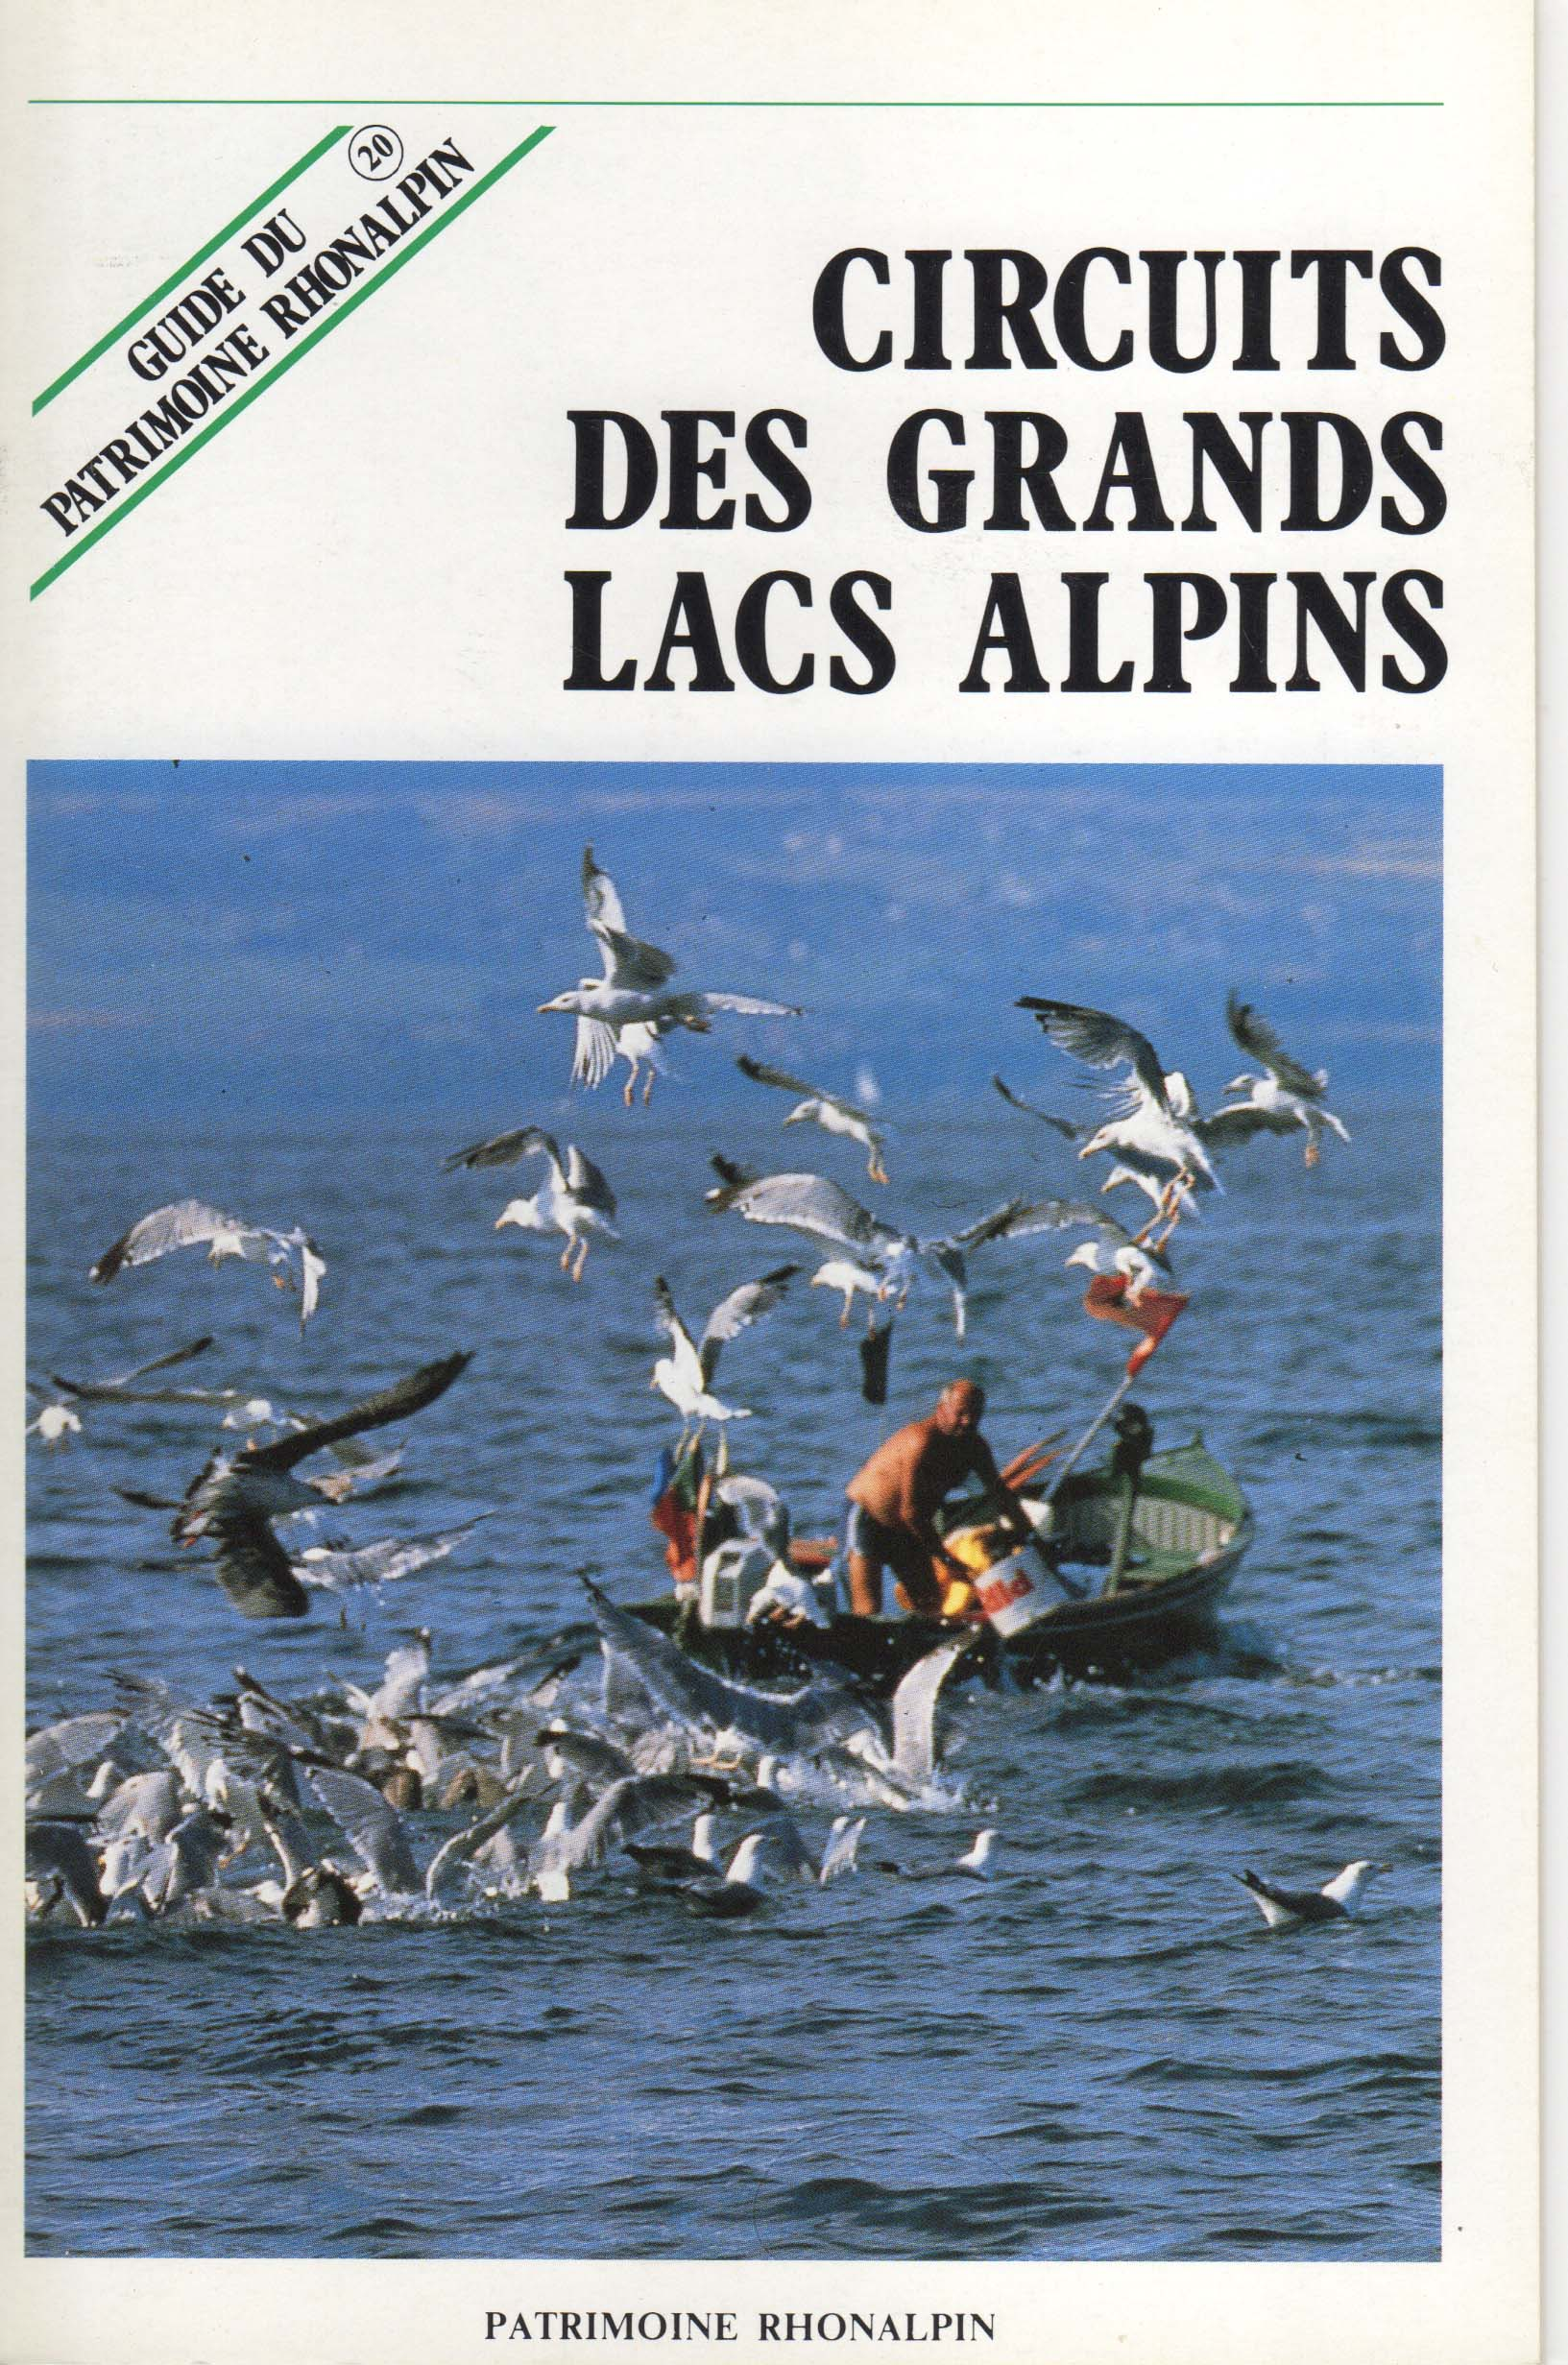 Guide n°20 – Circuits des grands lacs alpins